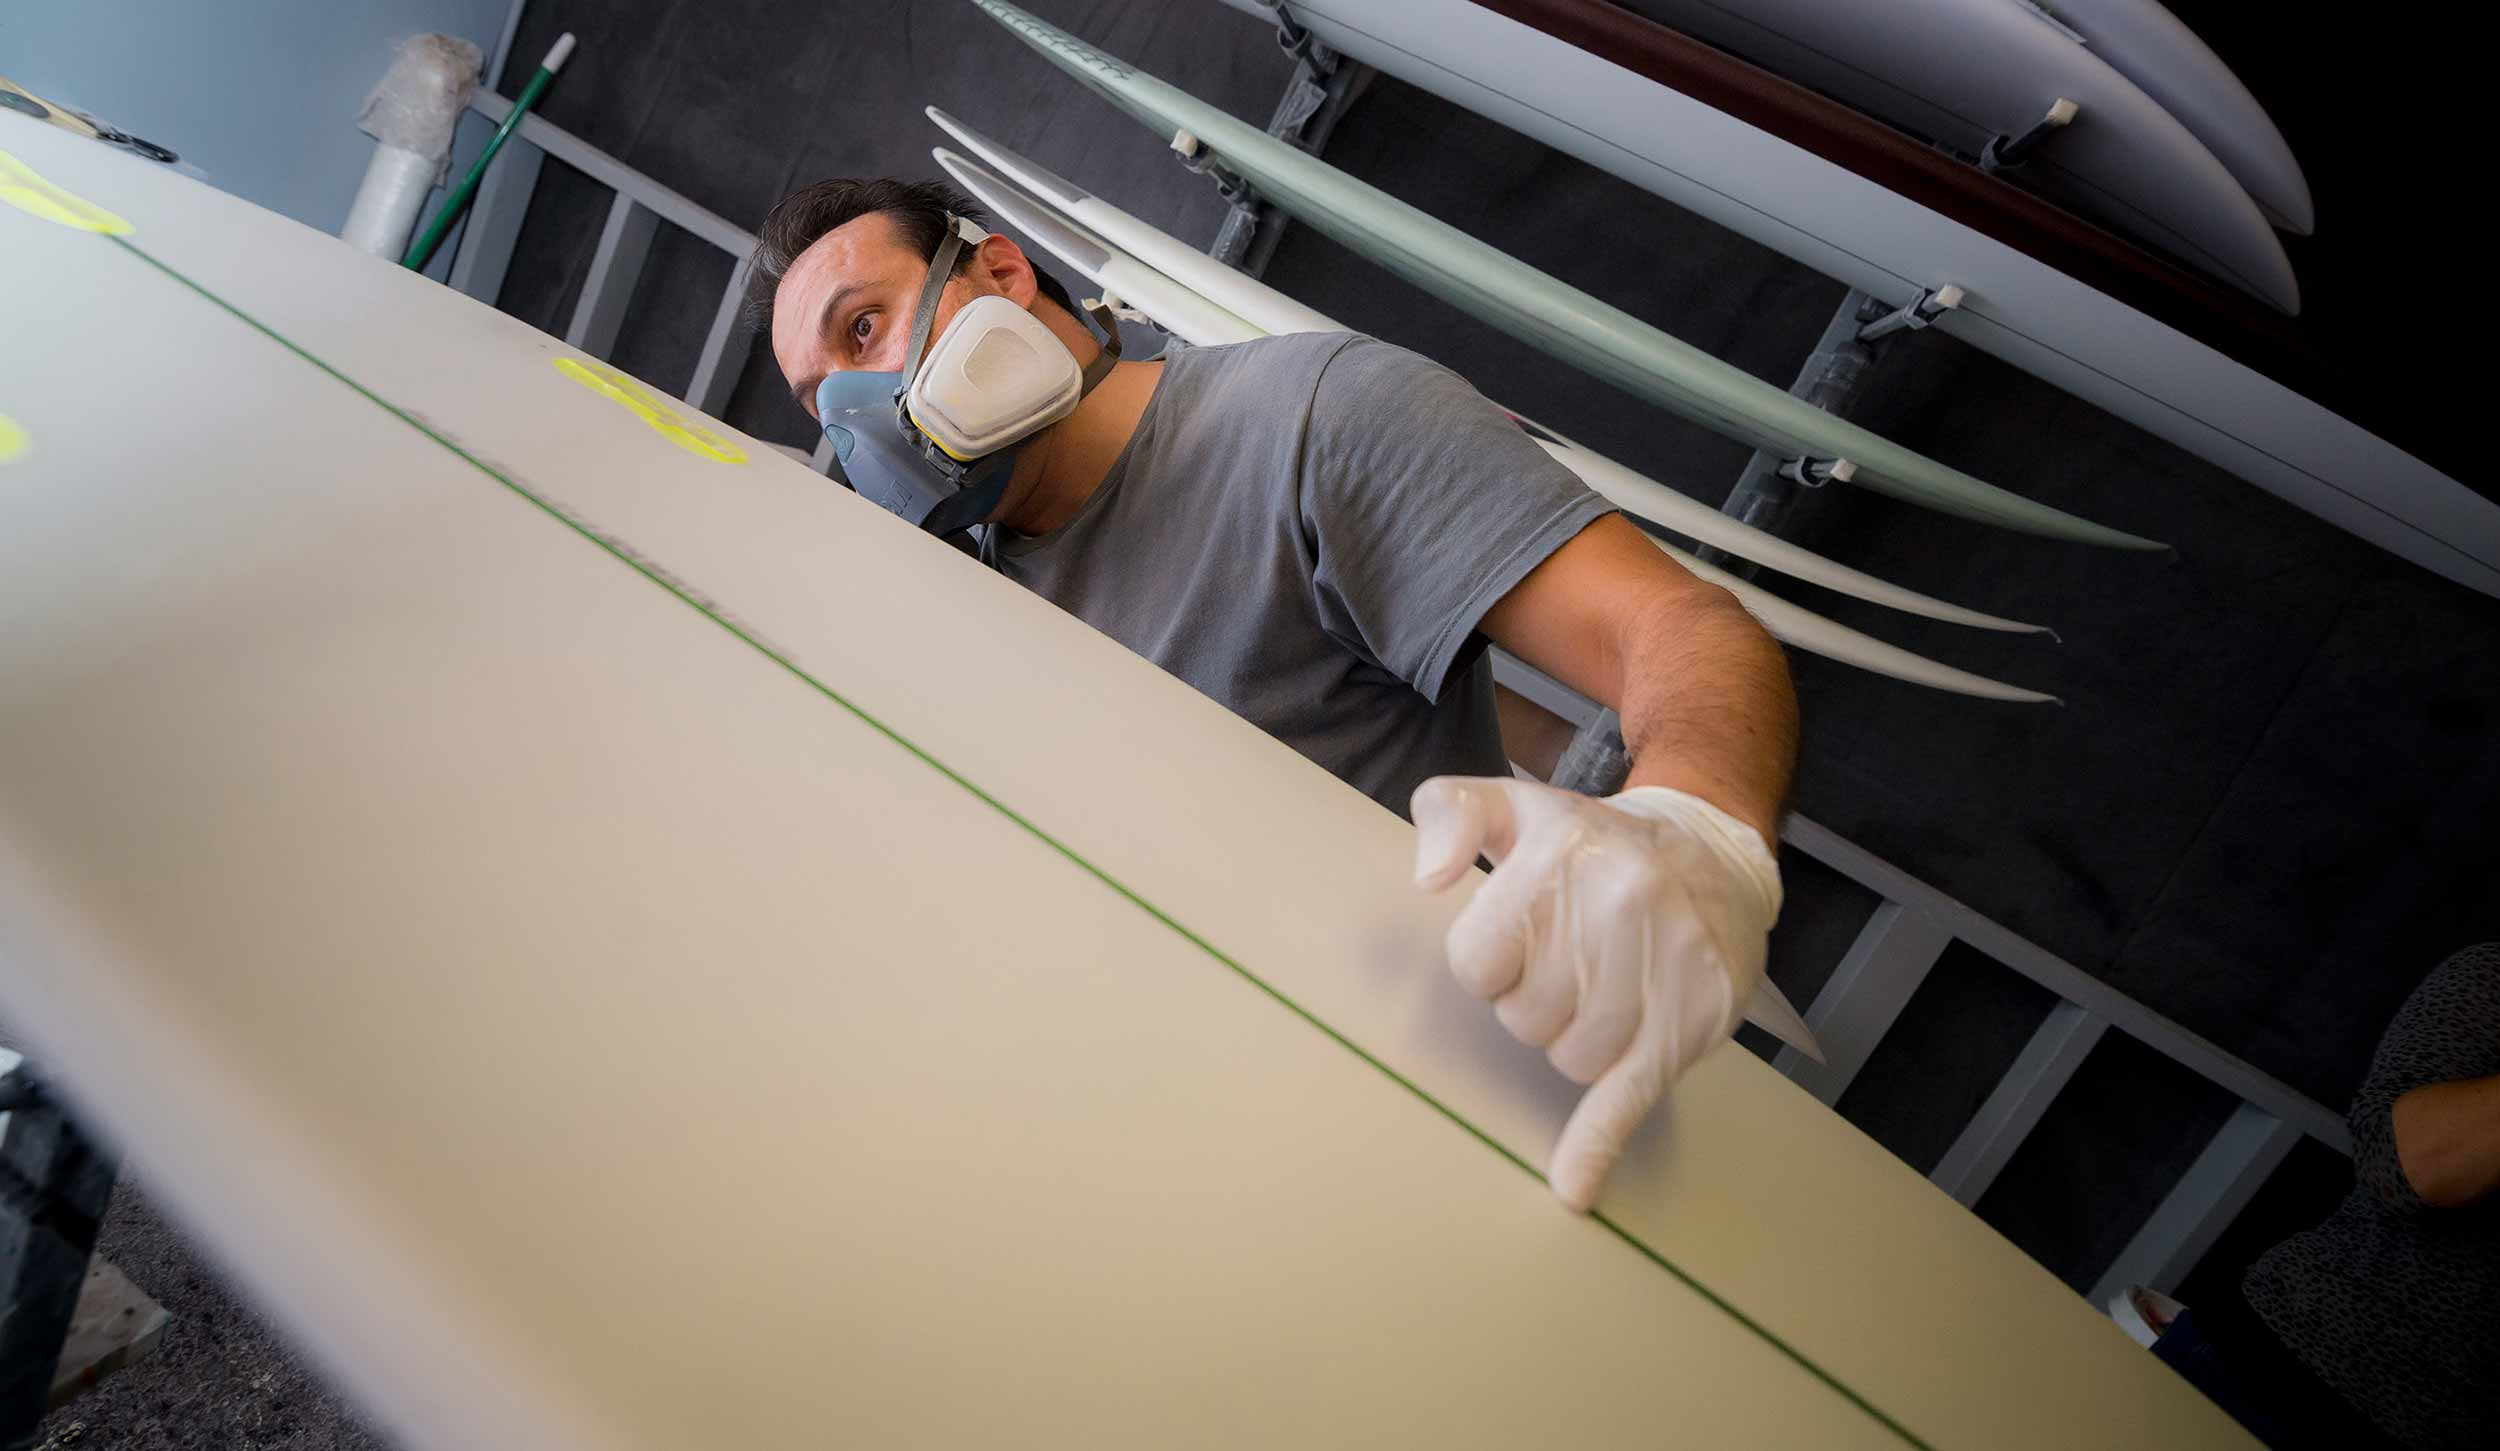 Photo: World's first algae-based, sustainable surfboard